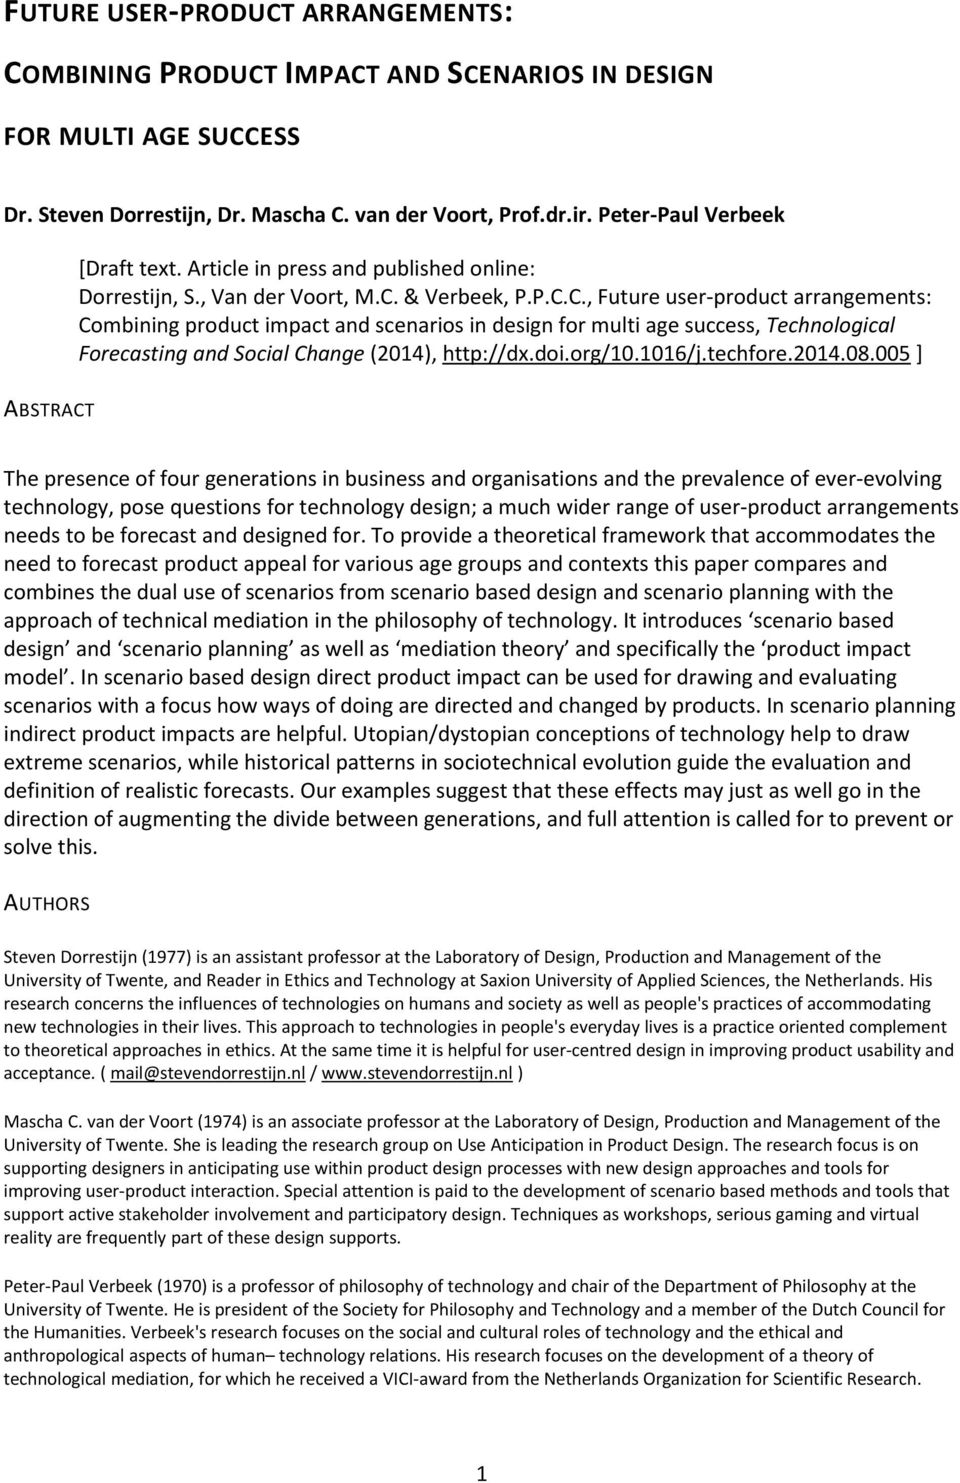 & Verbeek, P.P.C.C., Future user-product arrangements: Combining product impact and scenarios in design for multi age success, Technological Forecasting and Social Change (2014), http://dx.doi.org/10.